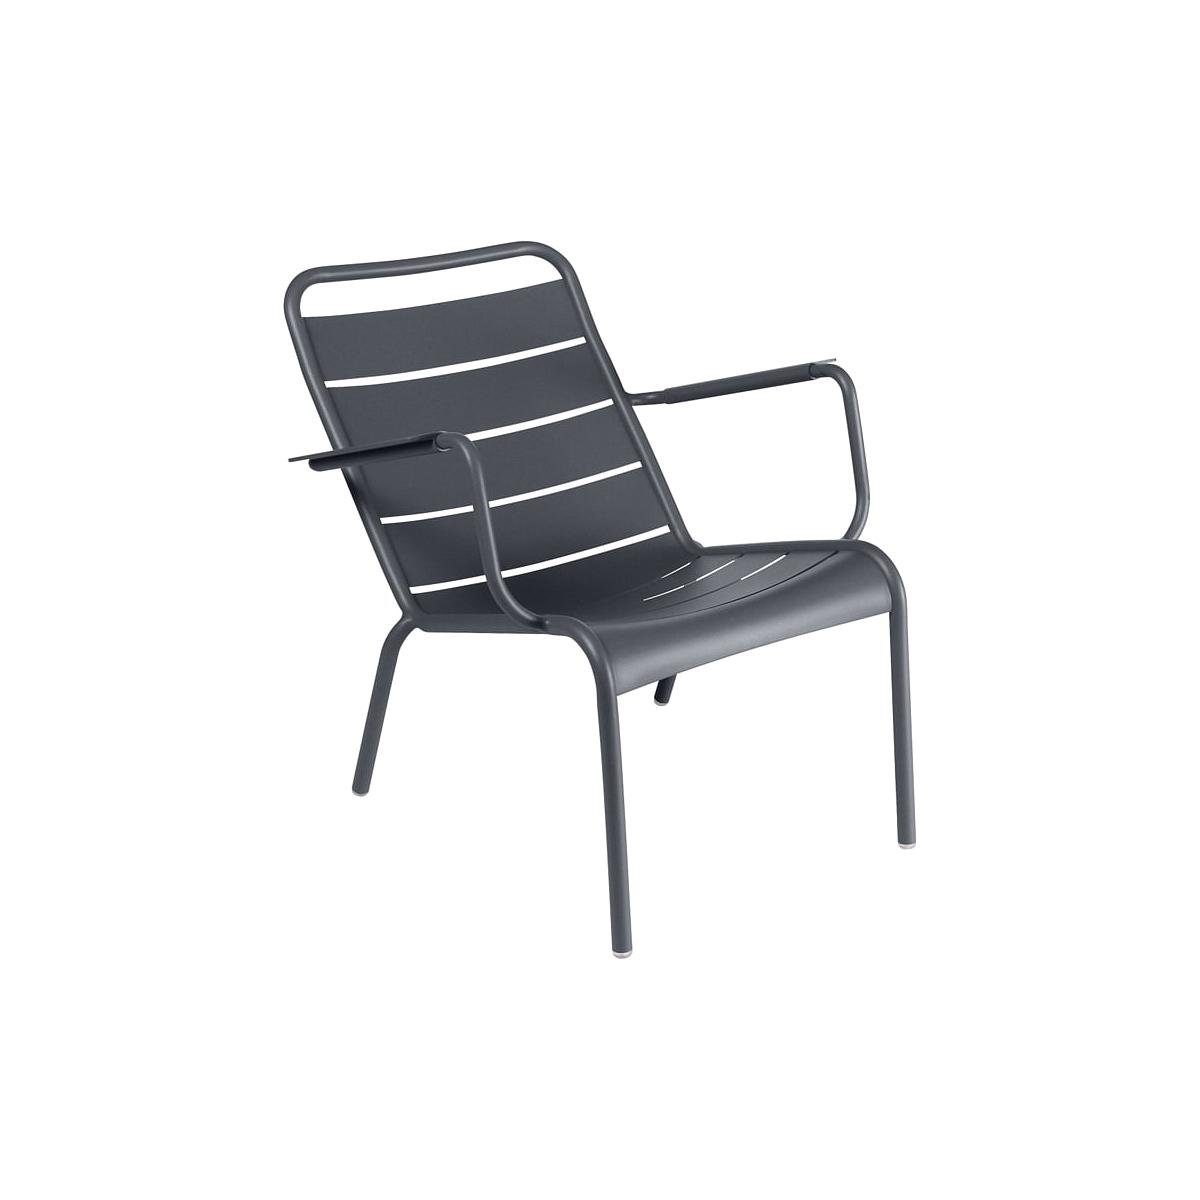 LUXEMBOURG  by Fermob Fauteuil bas Carbone